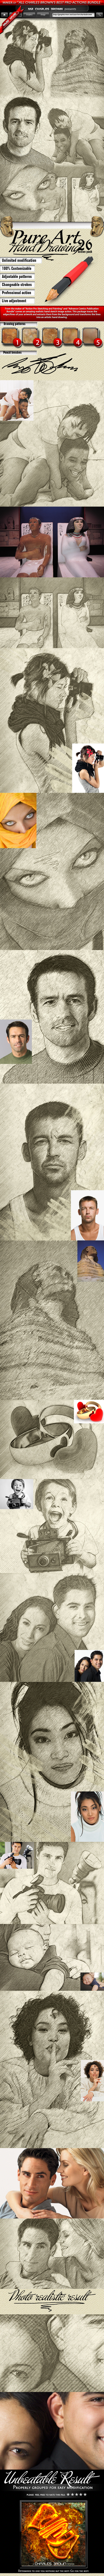 Pure Art Hand Drawing 26 – Egyptian Primitive Art - Photo Effects Actions